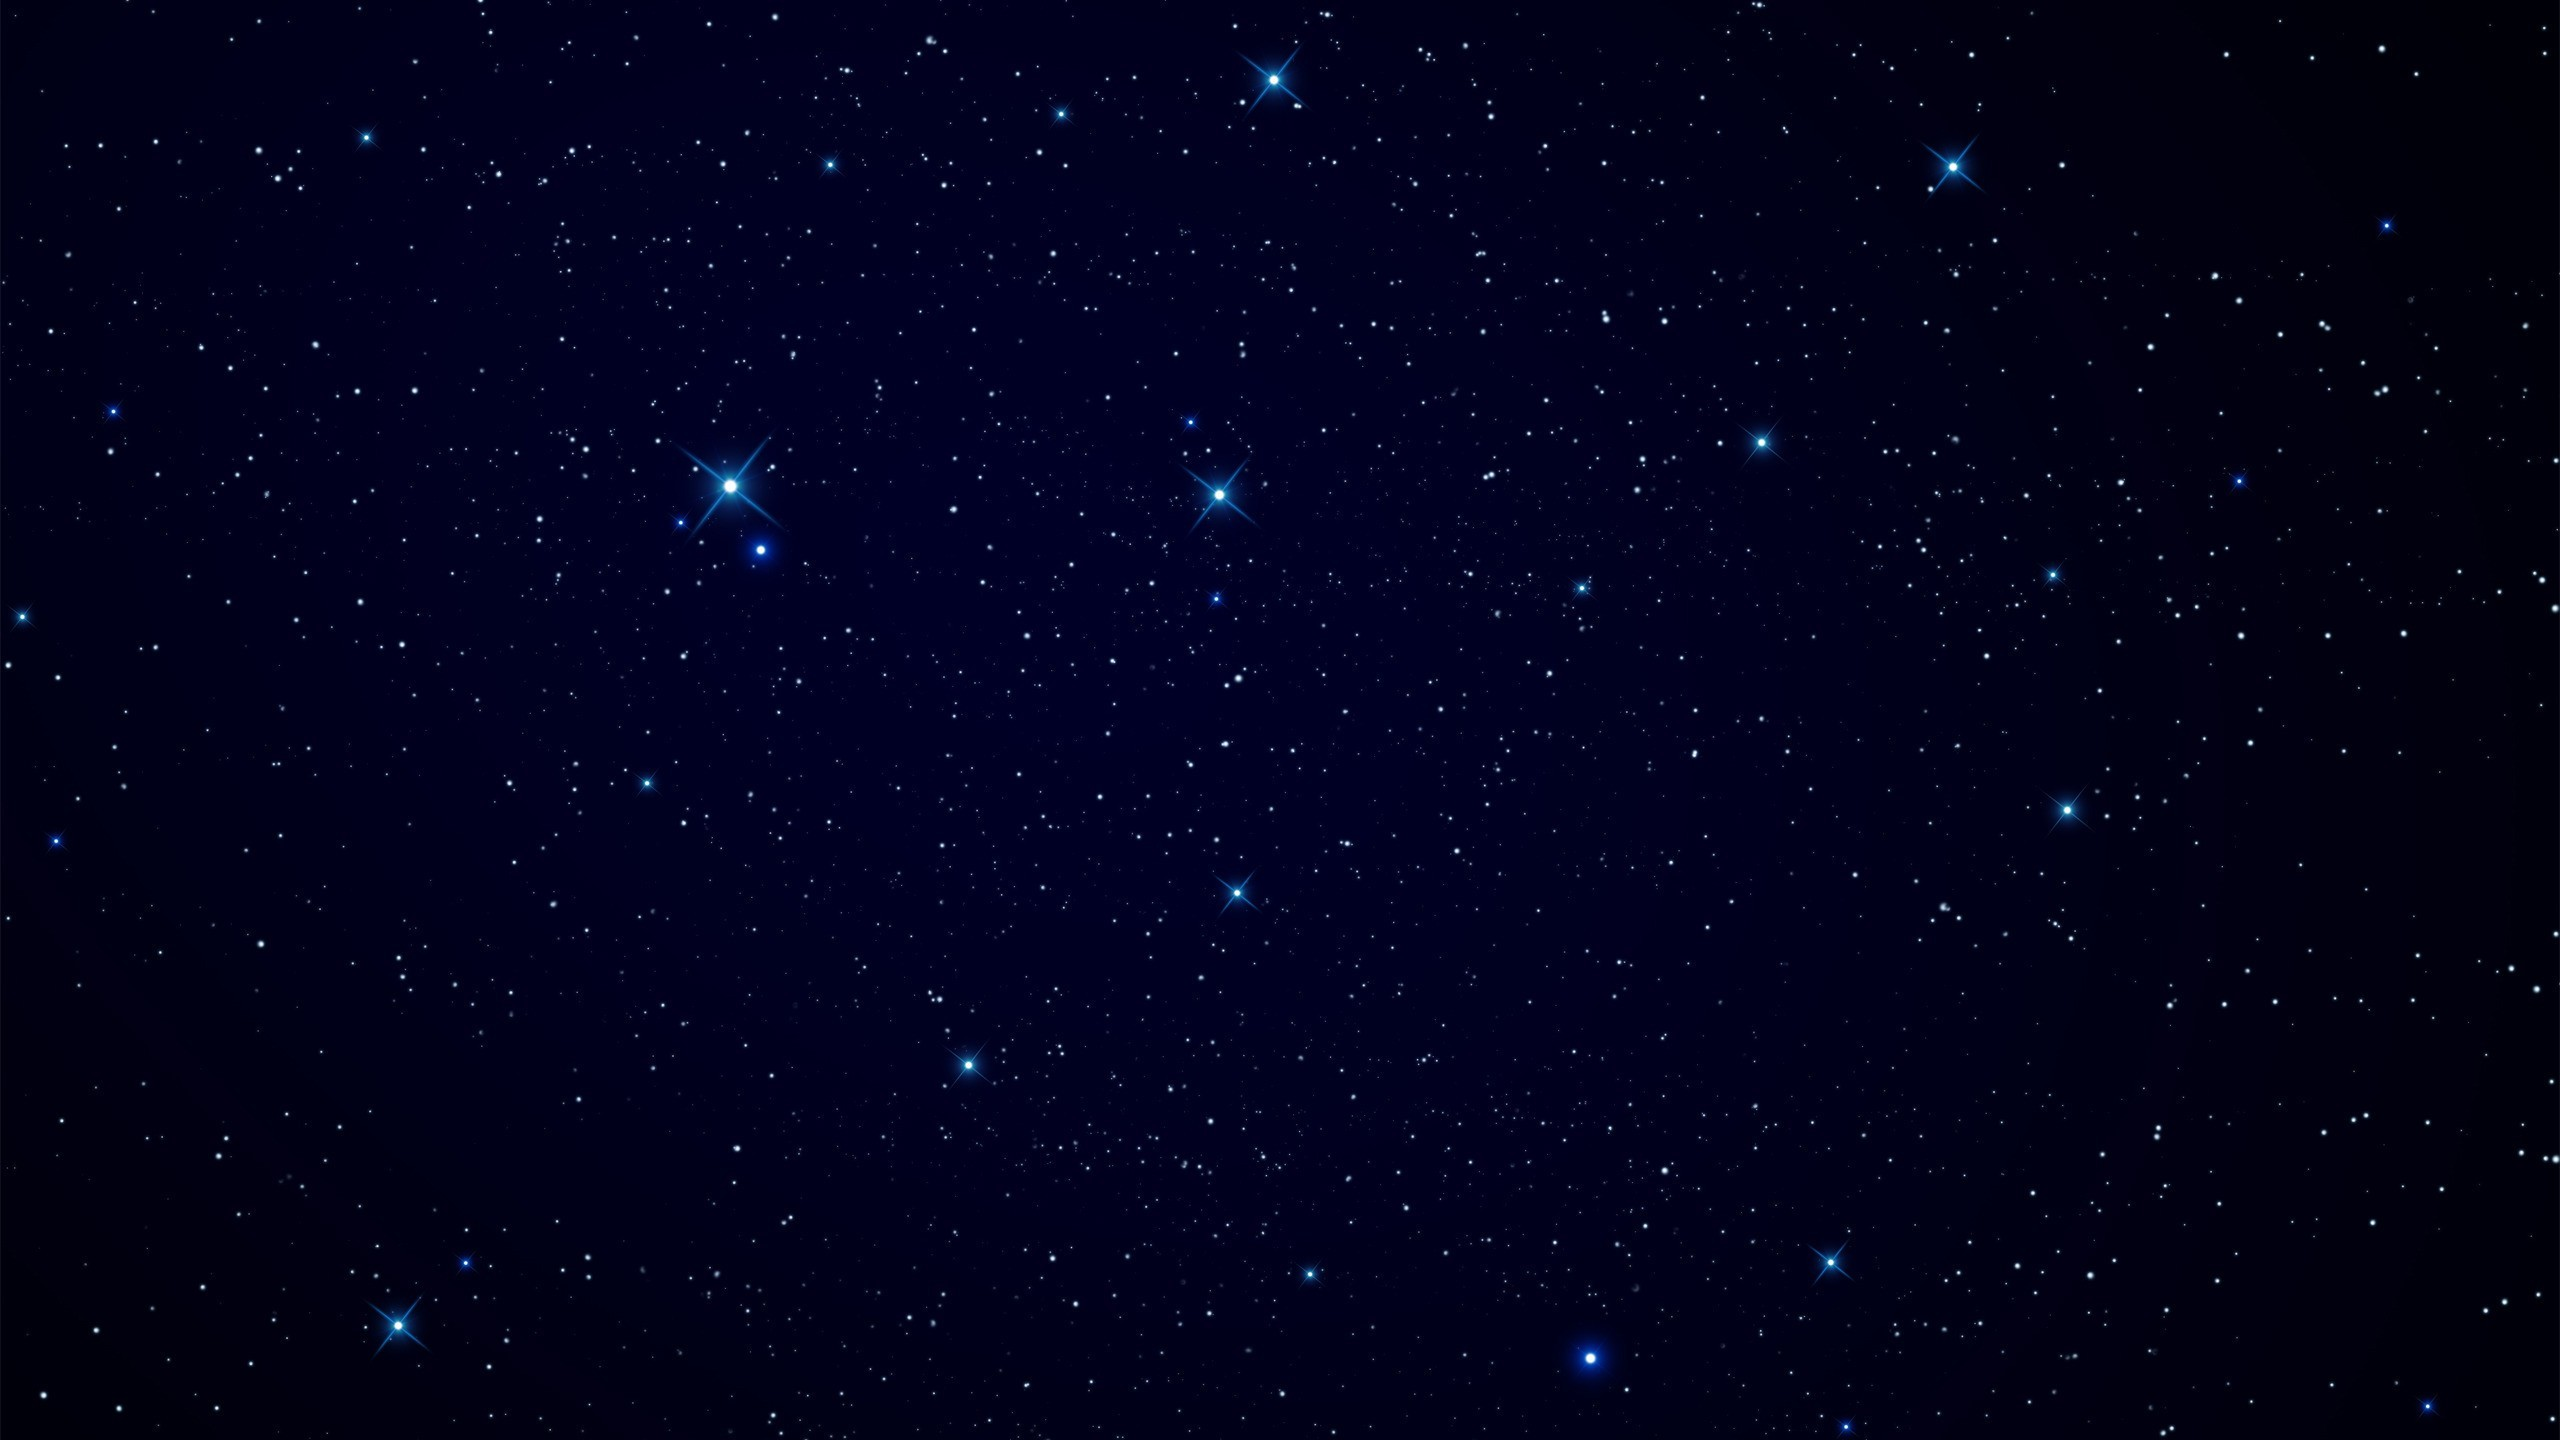 Night Sky Stars Background Psdgraphics - HD 2560×1440